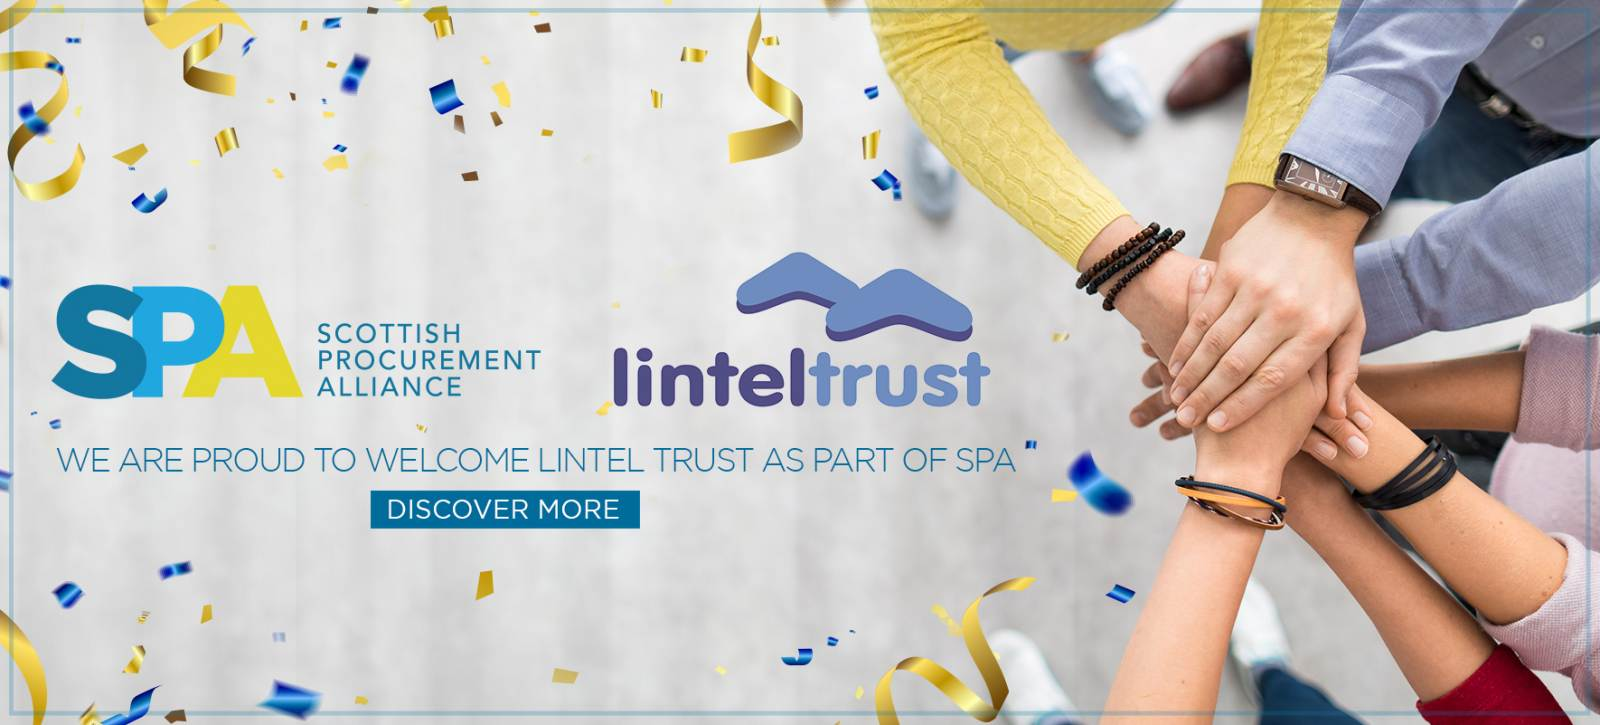 <p>Lintel Trust has joined the LHC group as part of the Scottish Procurement Alliance to secure a future in supporting Scottish communities!</p>